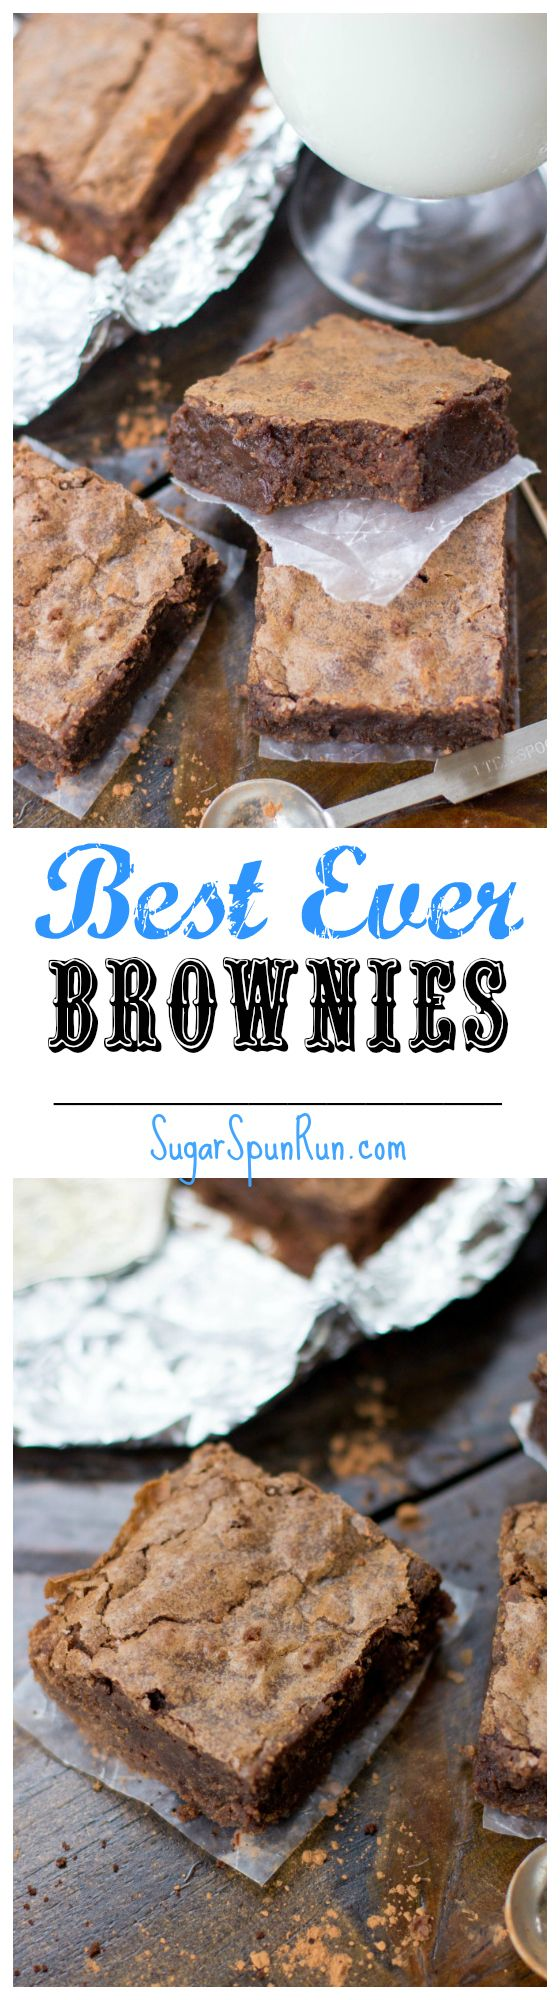 These are seriously the best brownies I've ever tasted!